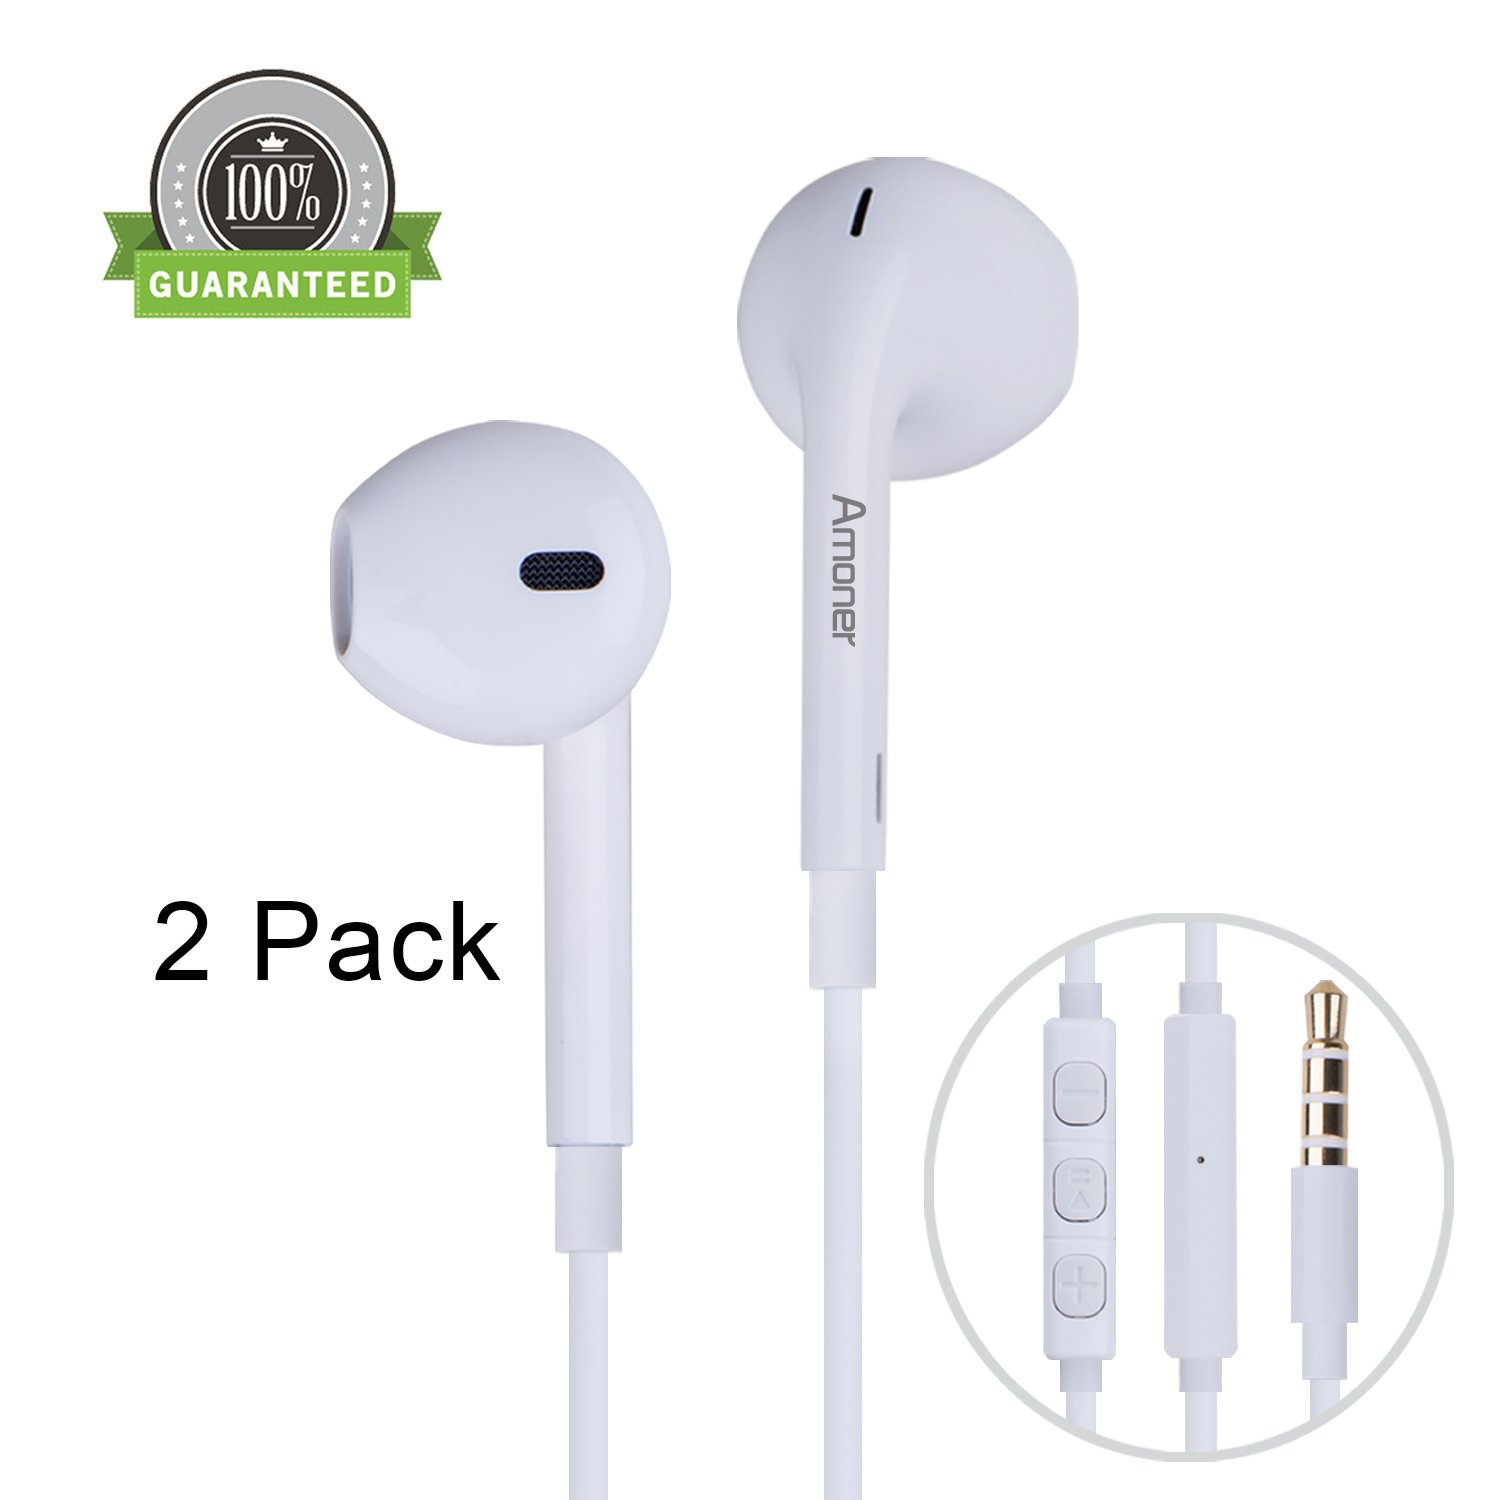 Amoner 2 Pack Premium Earphones/Earbuds/Headphones with Stereo Mic & Remote Control for iPhone 6S/iPhone 6, iPhone 6 Plus,iPhone 5s 5c 5, iPad /iPod and more(White)